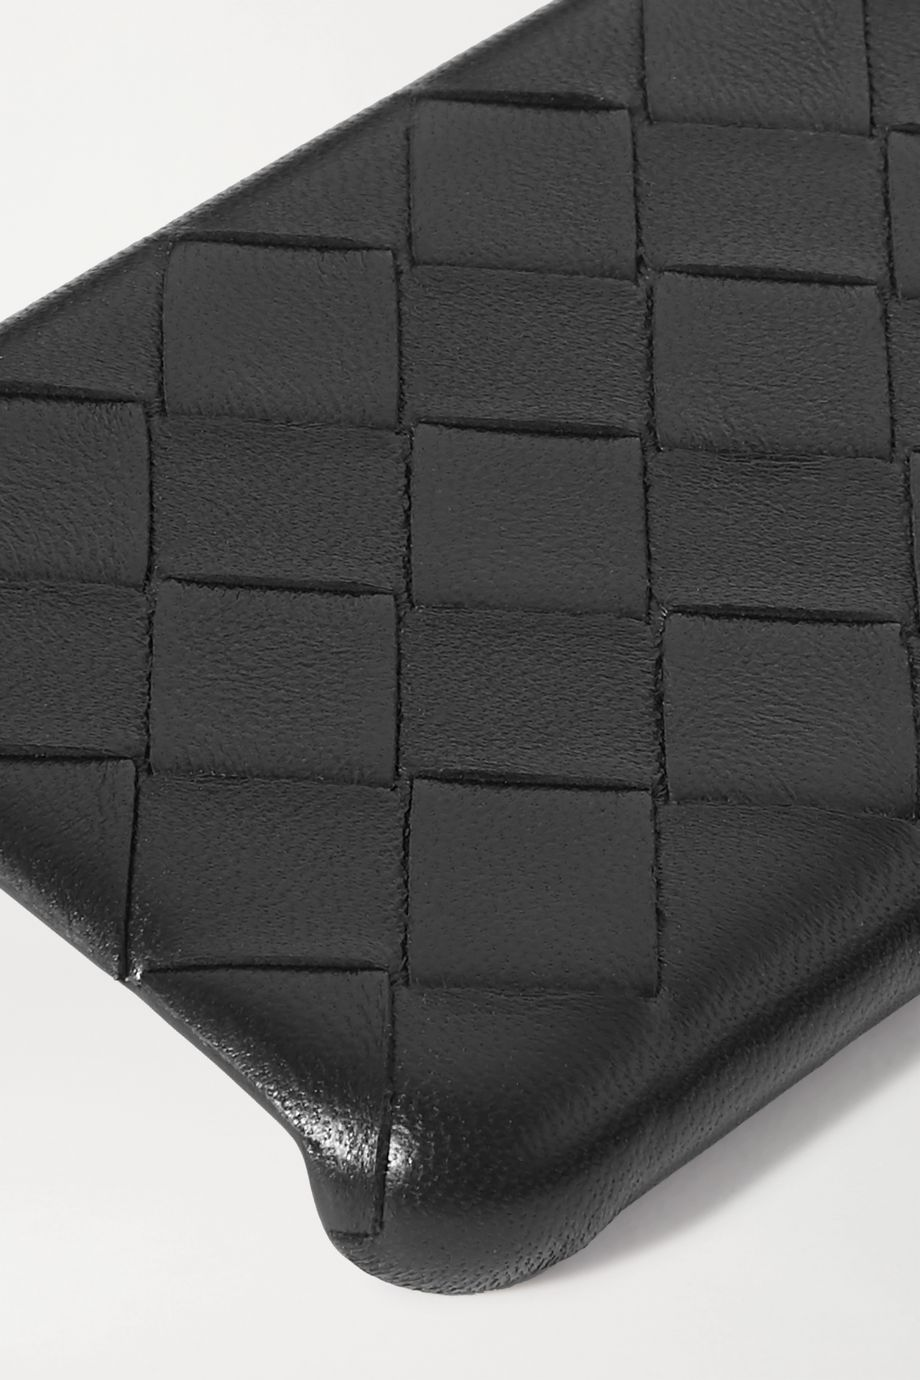 Bottega Veneta Intrecciato textured-leather iPhone 11 Pro case